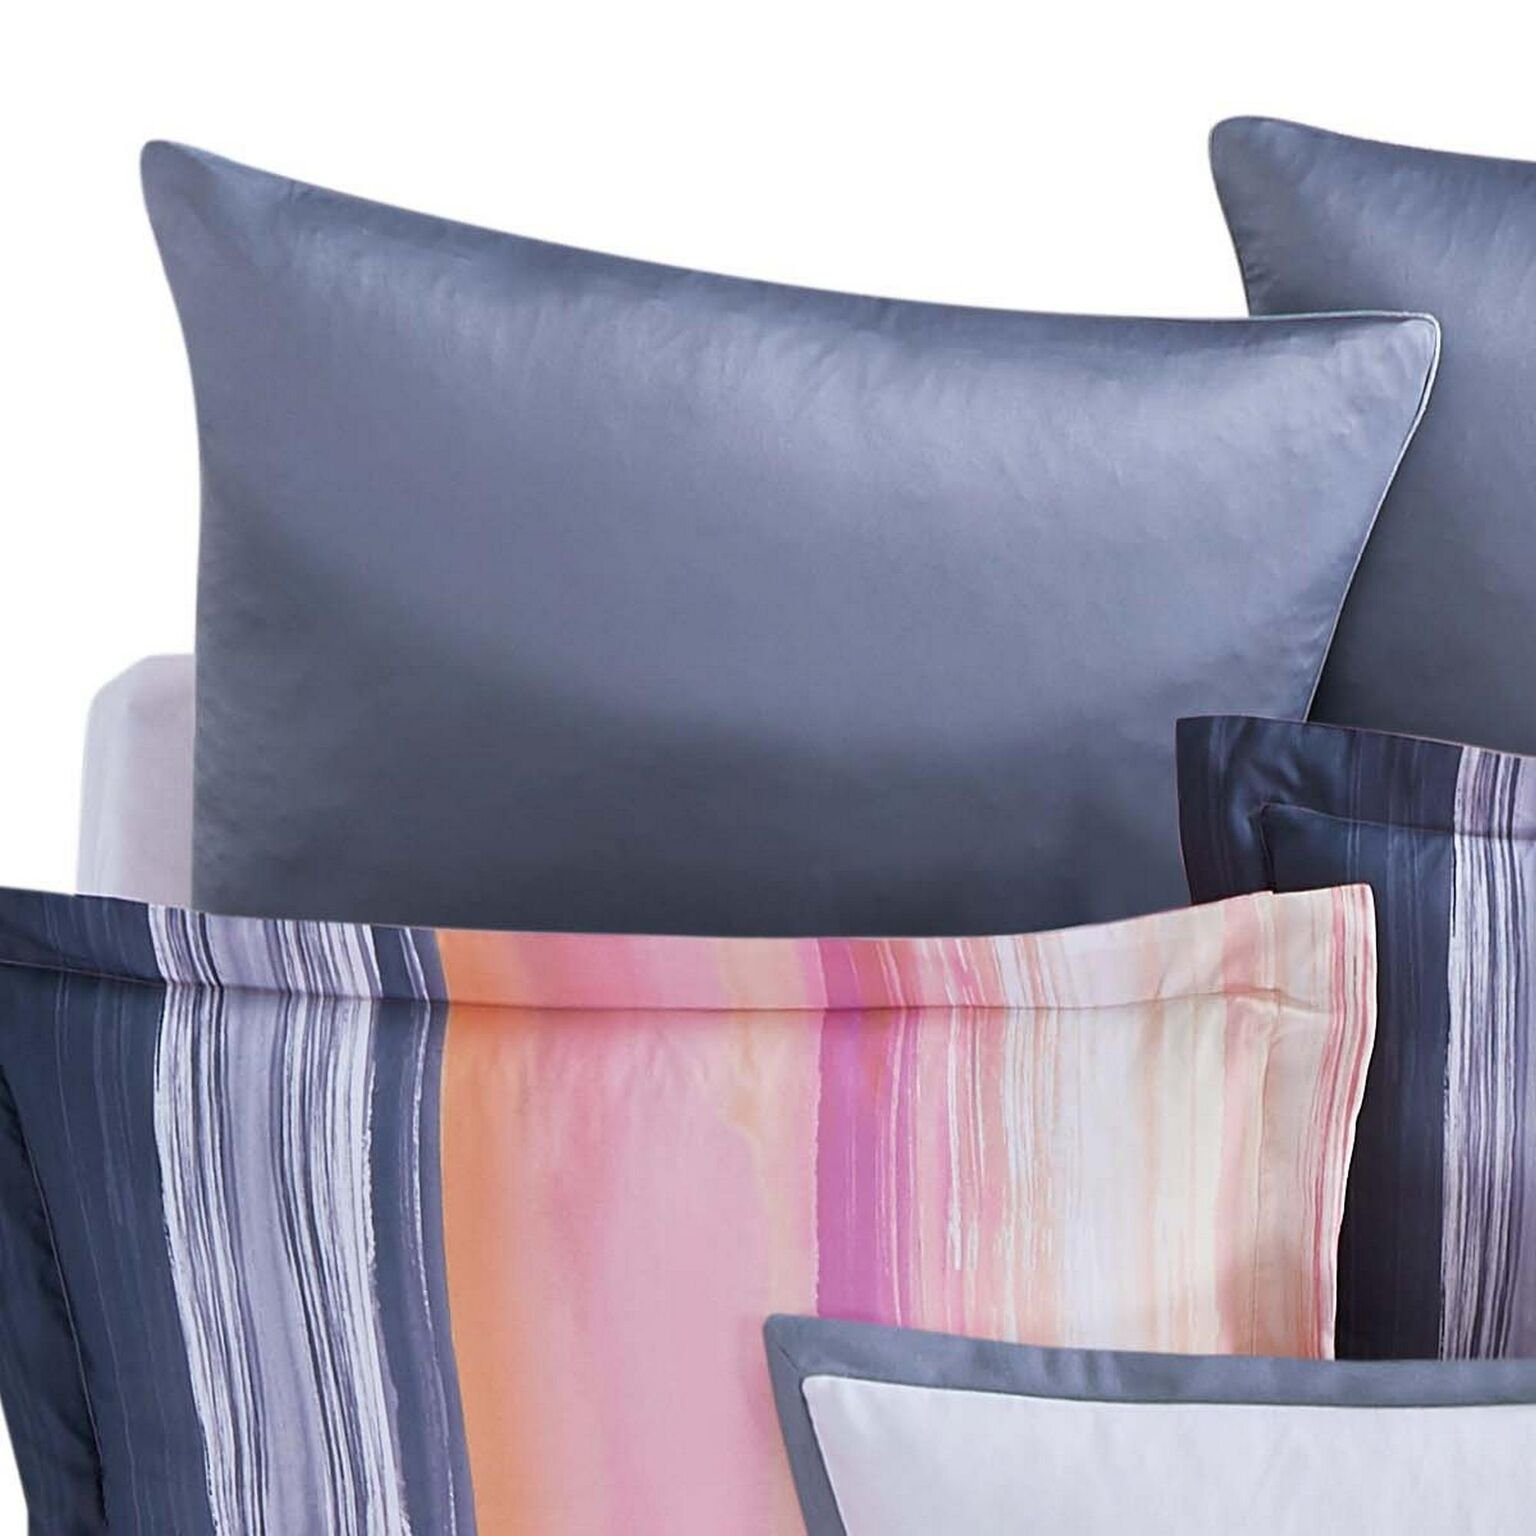 Christian Siriano Sunset Stripe, European Sham, Sunset Stripe European Sham by Christian Siriano